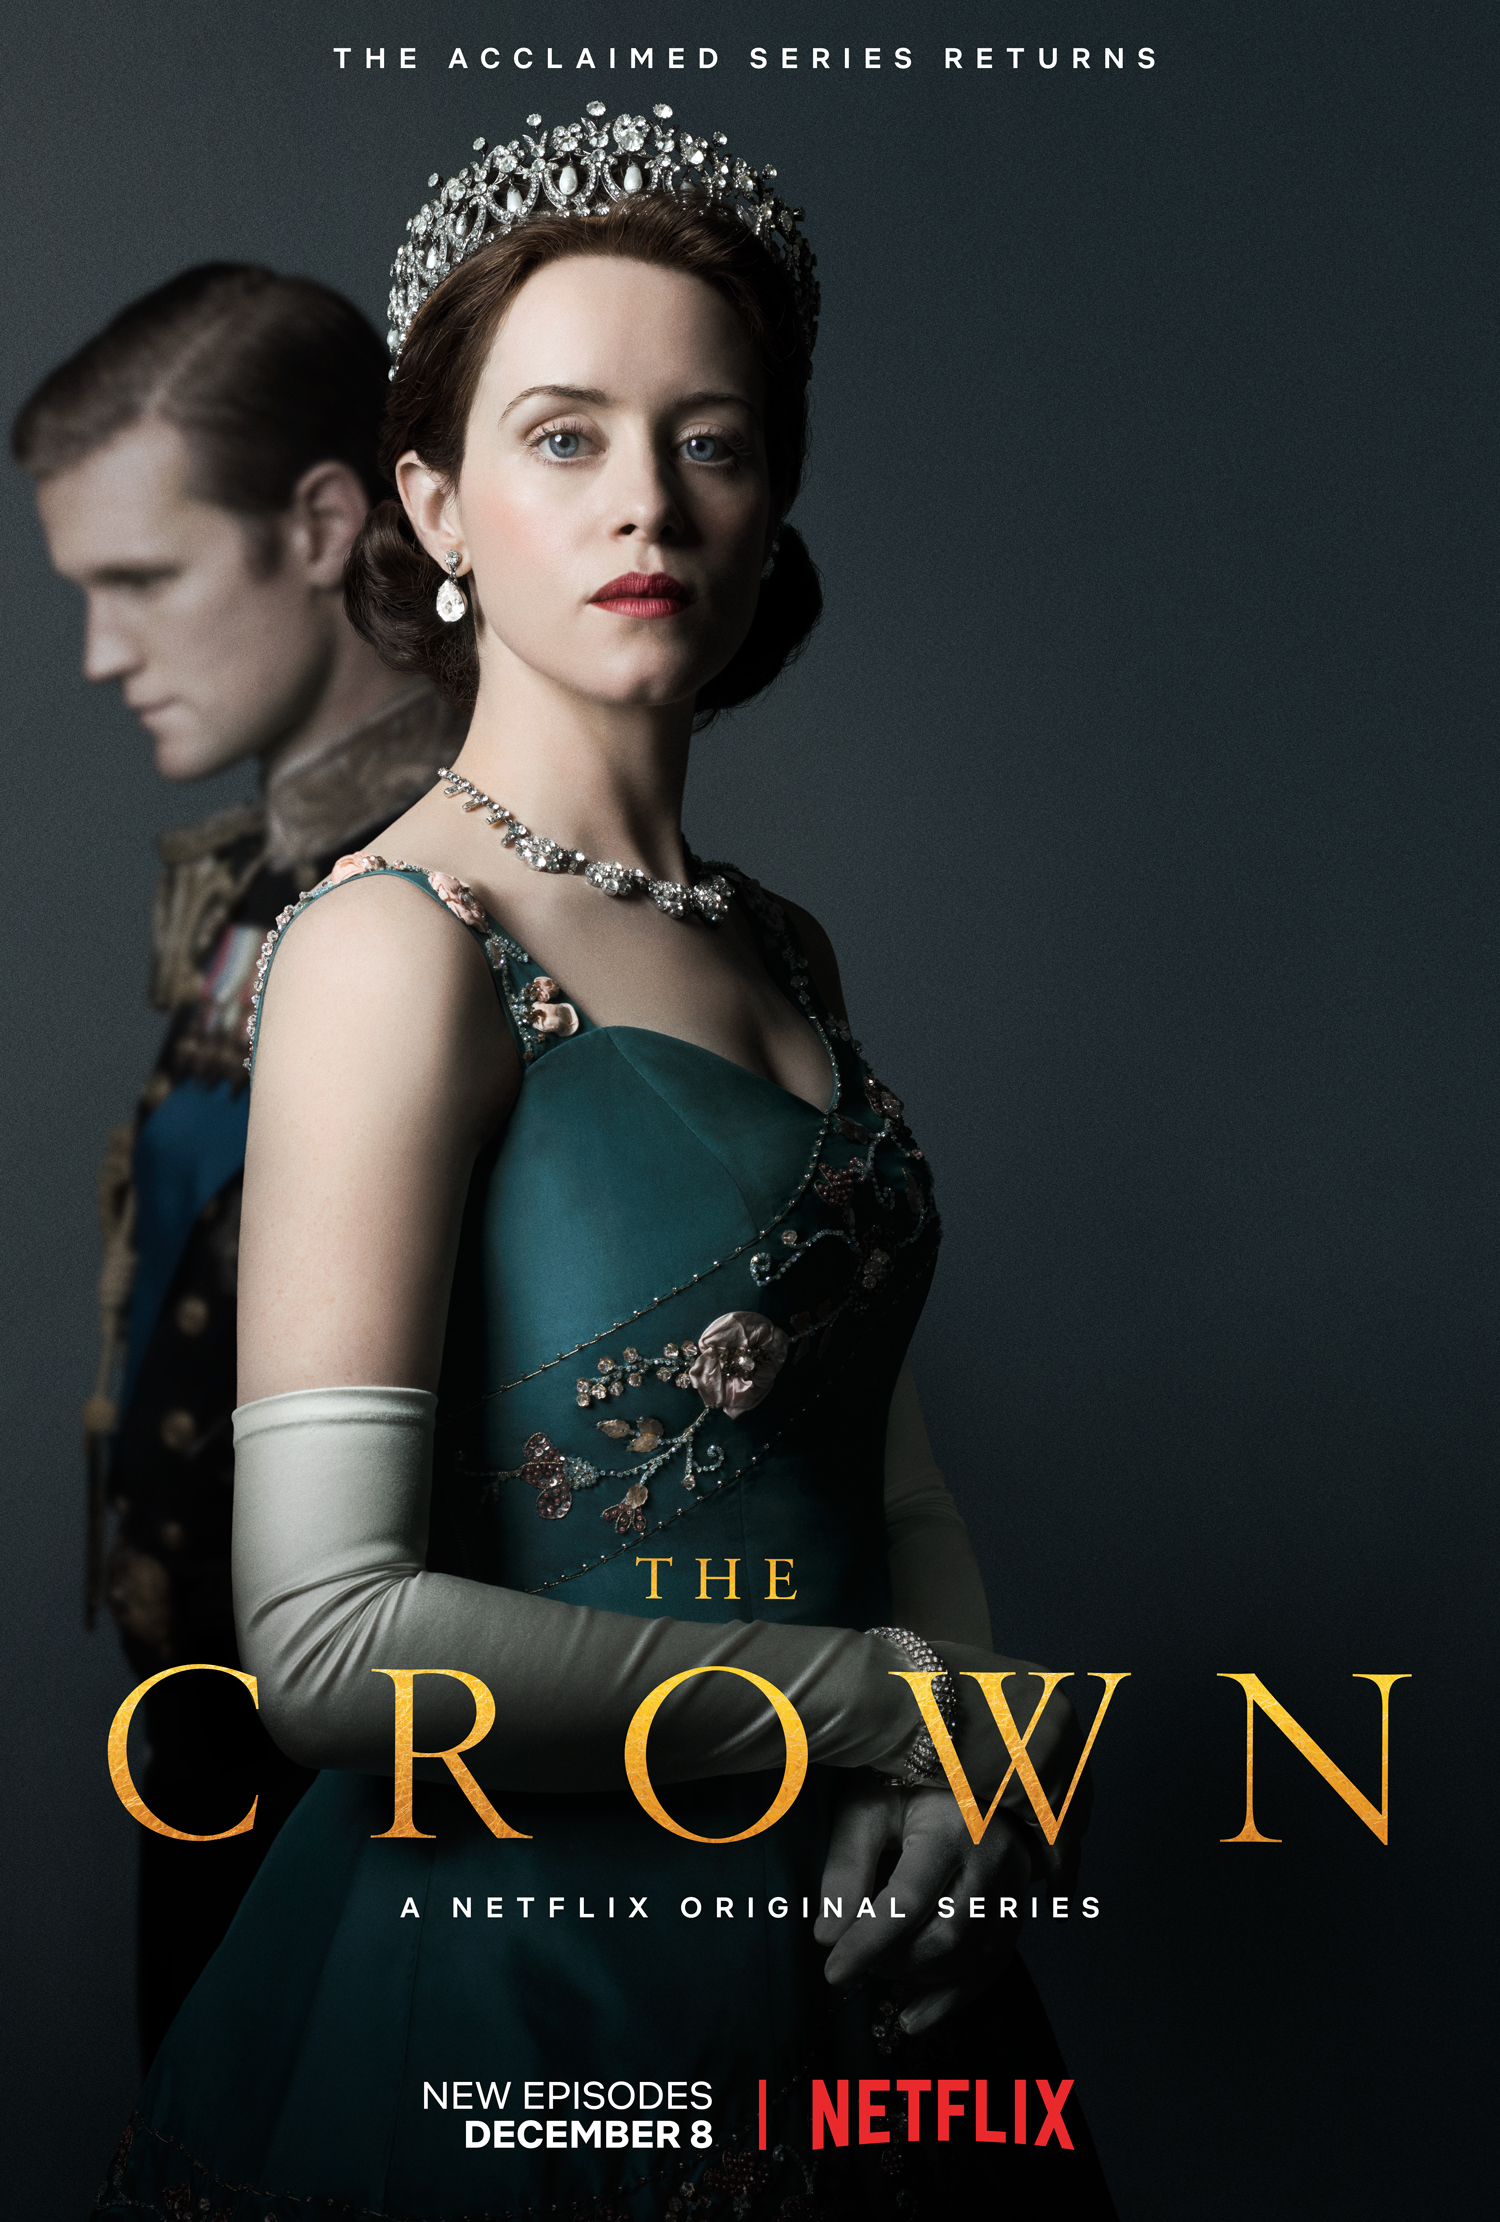 The Crown - Series 2